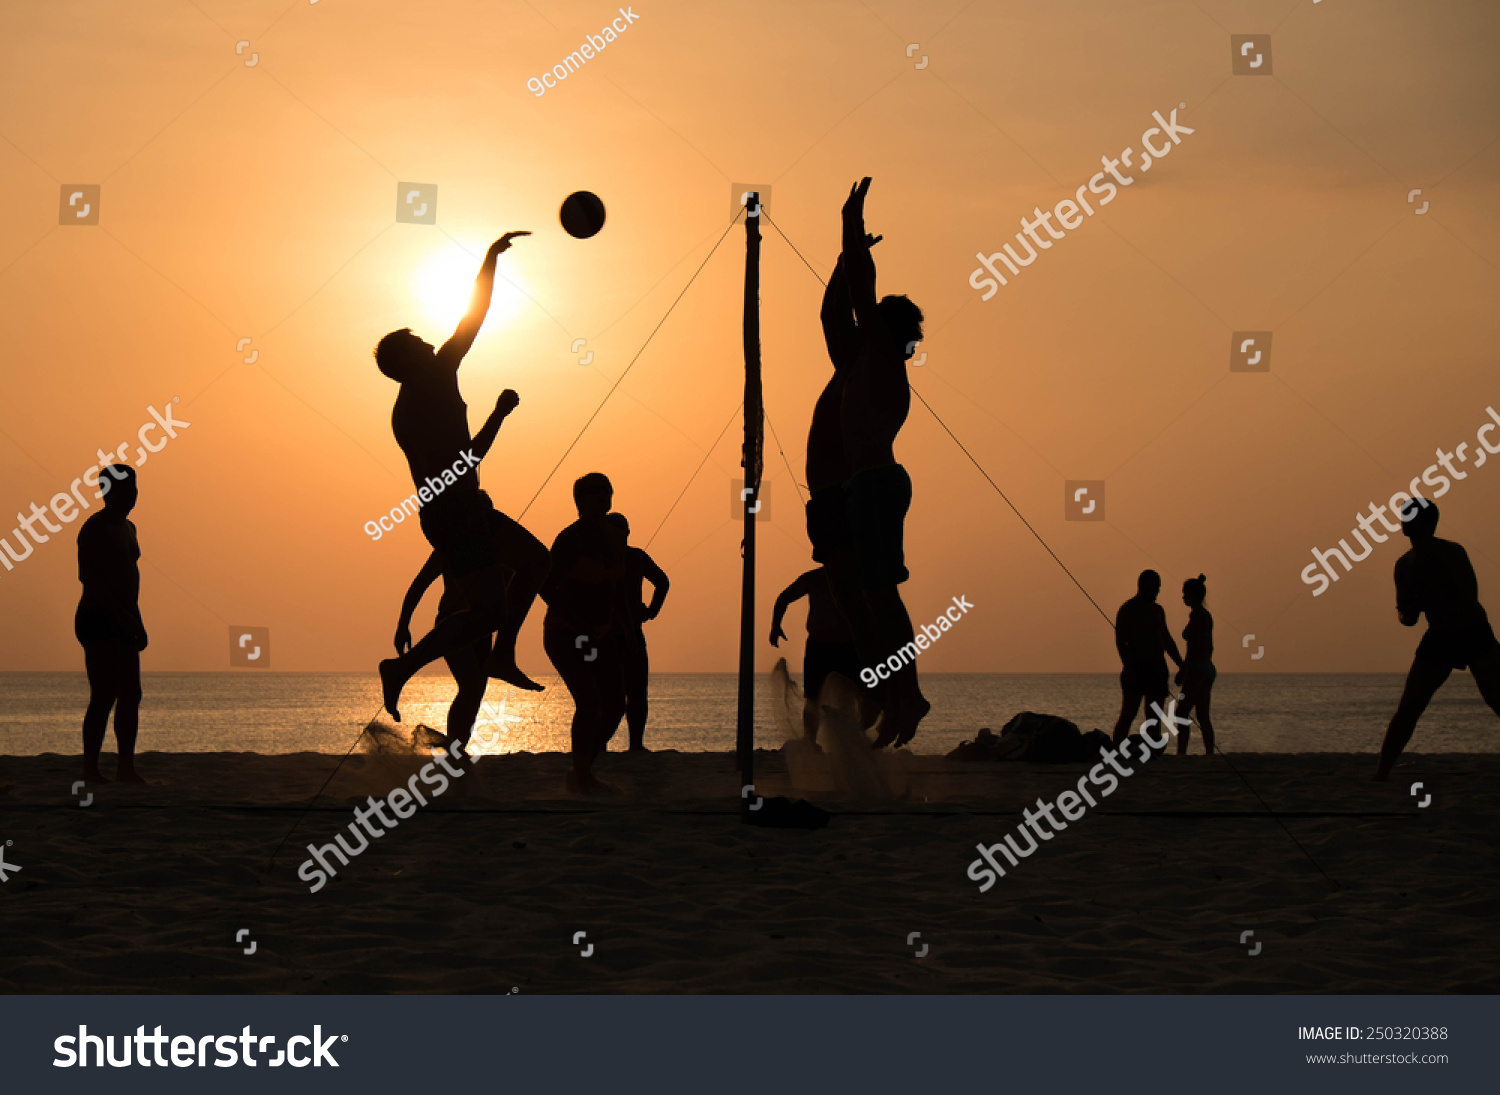 Illustration Abstract Volleyball Player Silhouette: Silhouette Of Beach Volleyball Player… Stock Photo